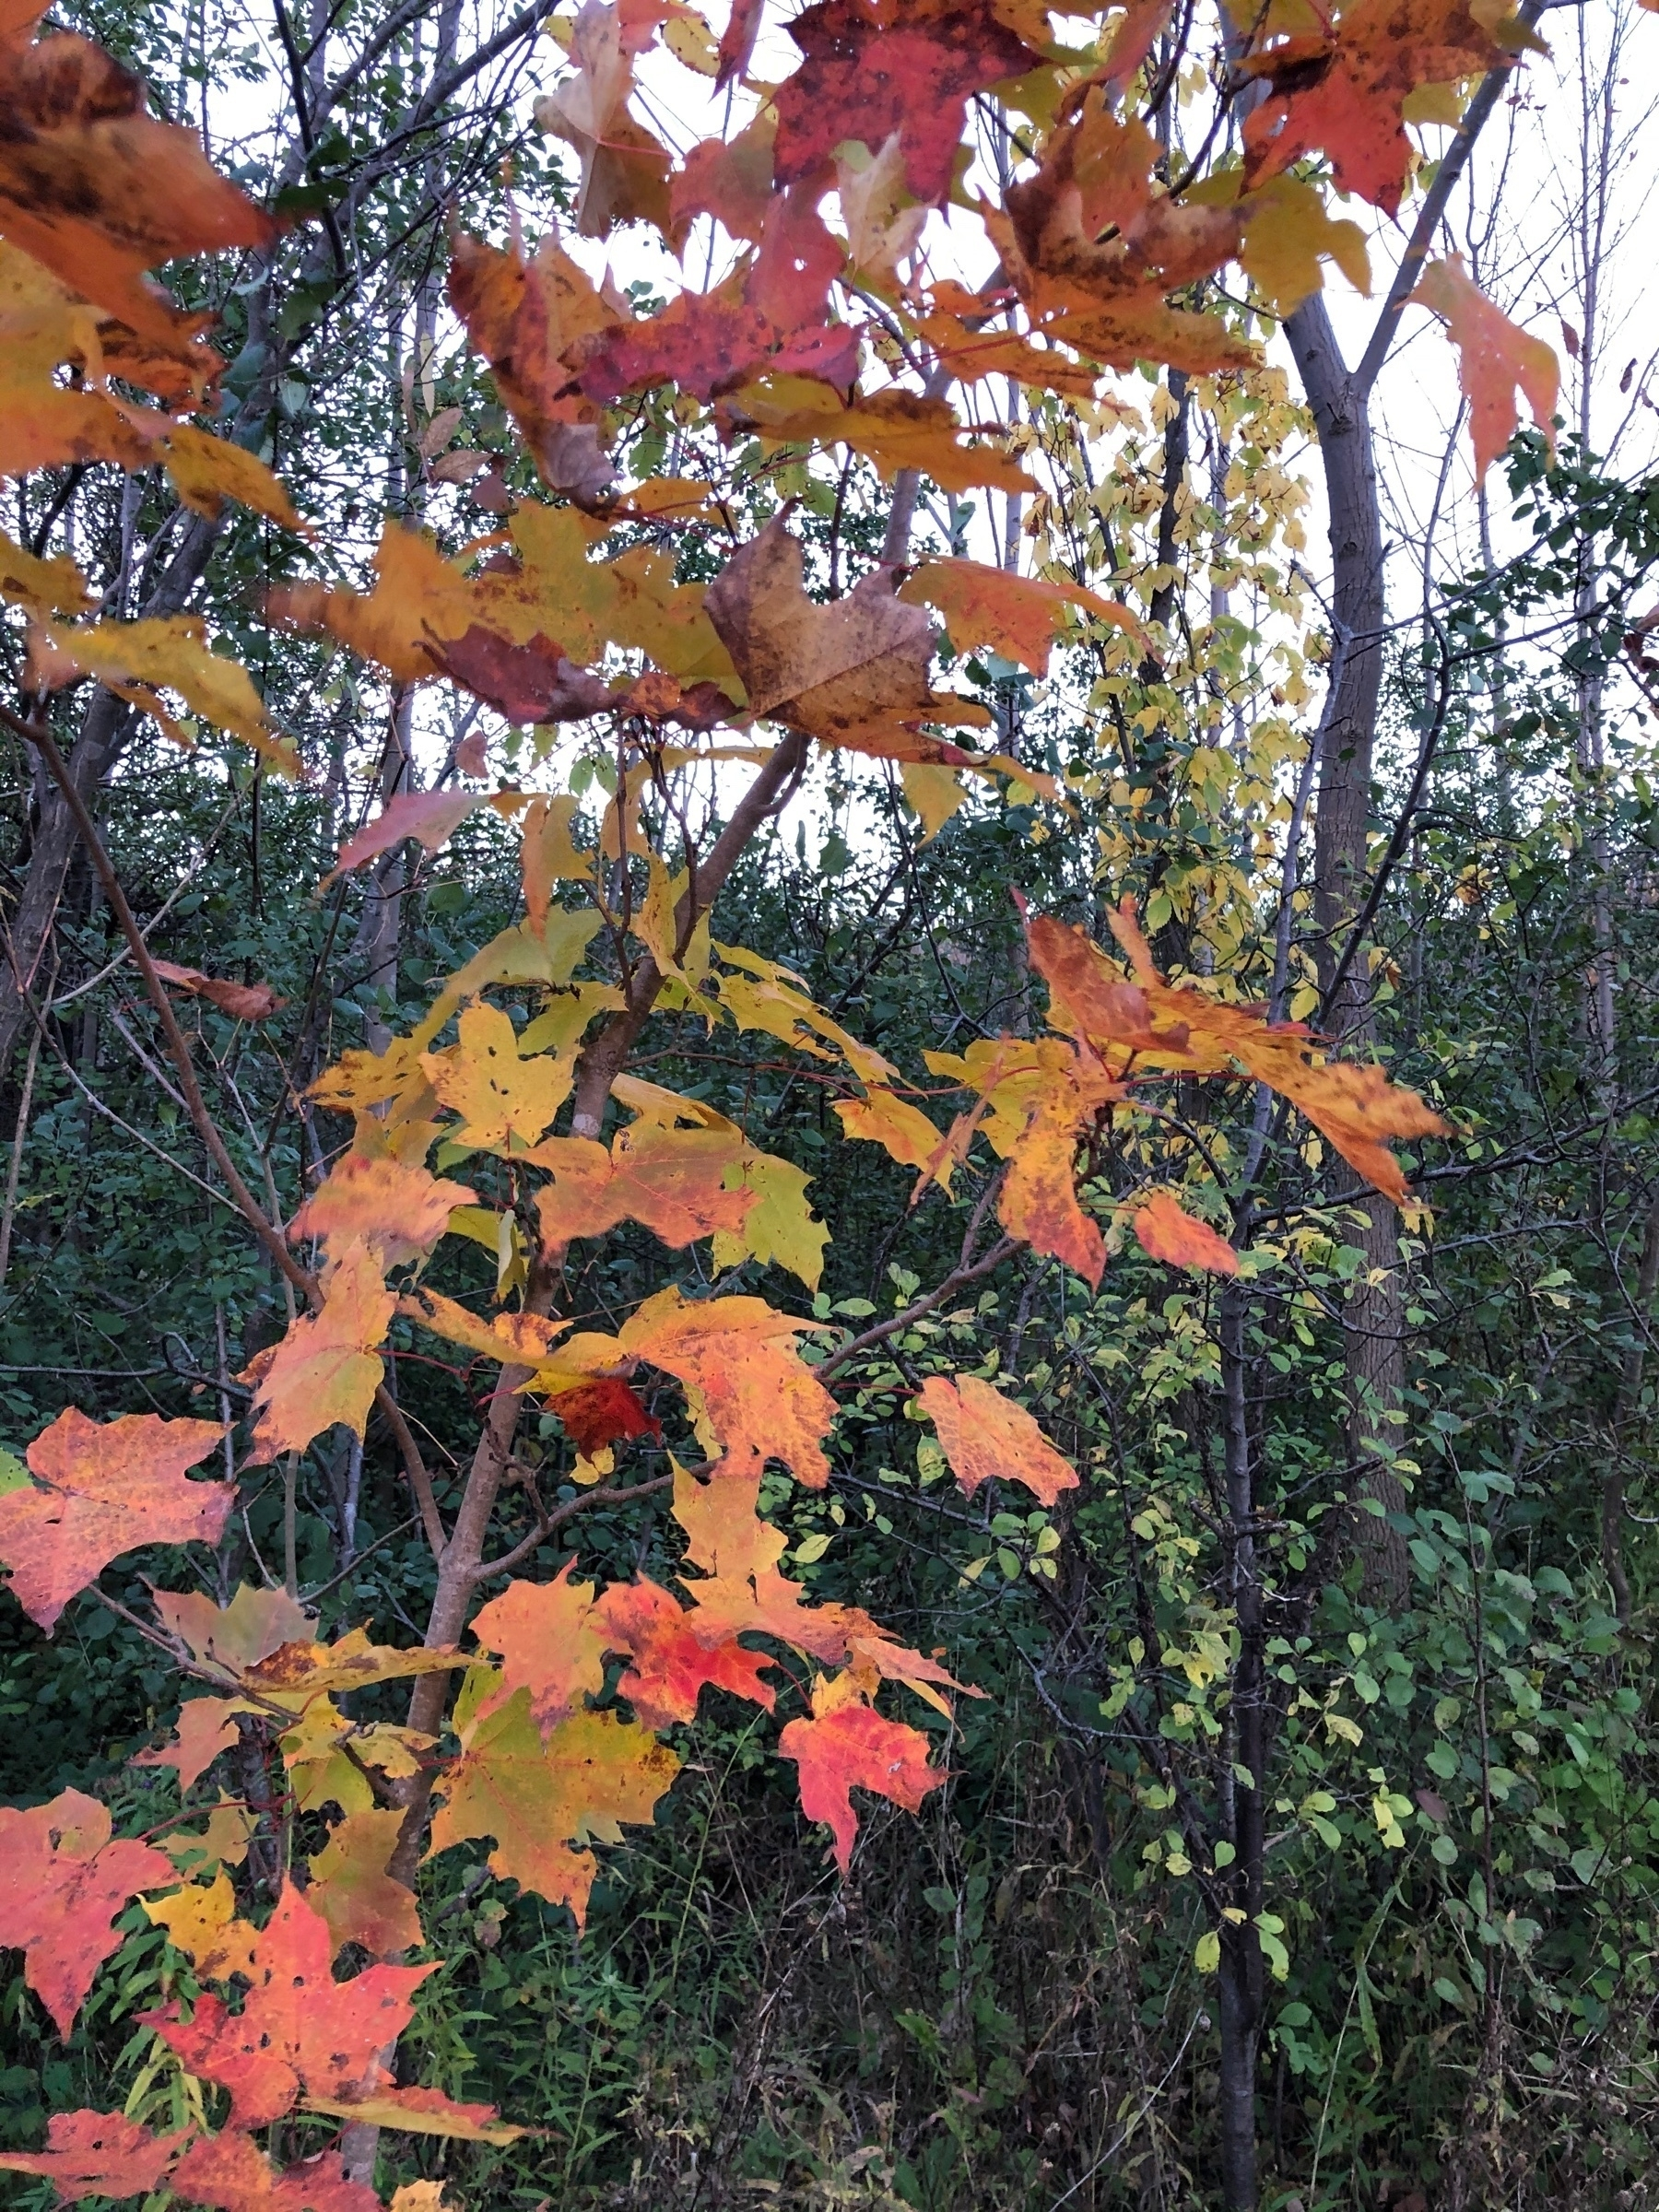 a small maple tree with orange leaves